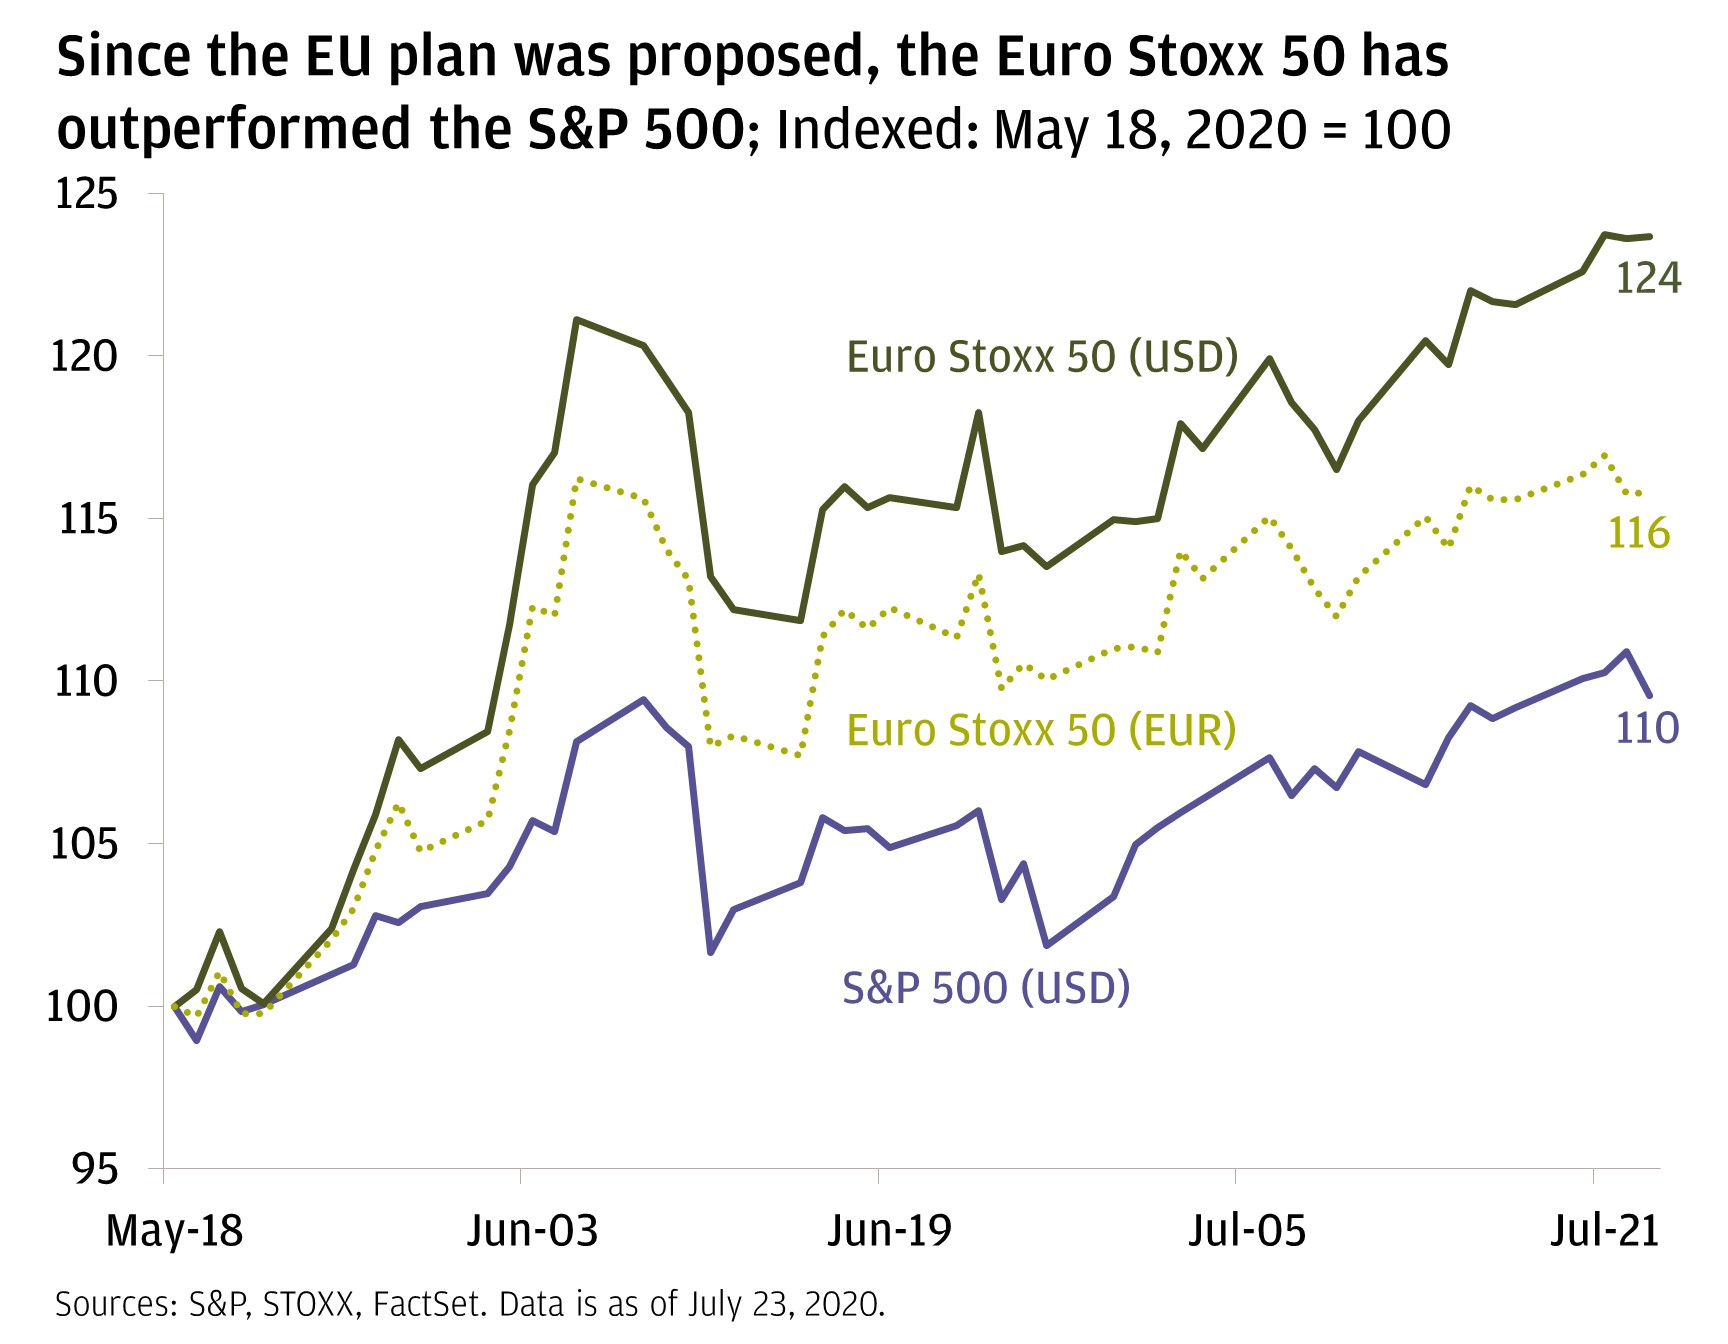 The line chart shows three lines from May 18, 2020, through July 22, 2020: the Euro Stoxx 50 Index in USD, the Euro Stoxx 50 Index in EUR, and the S&P 500. It shows that the Euro Stoxx 50 Index in USD has outperformed the other two indices.